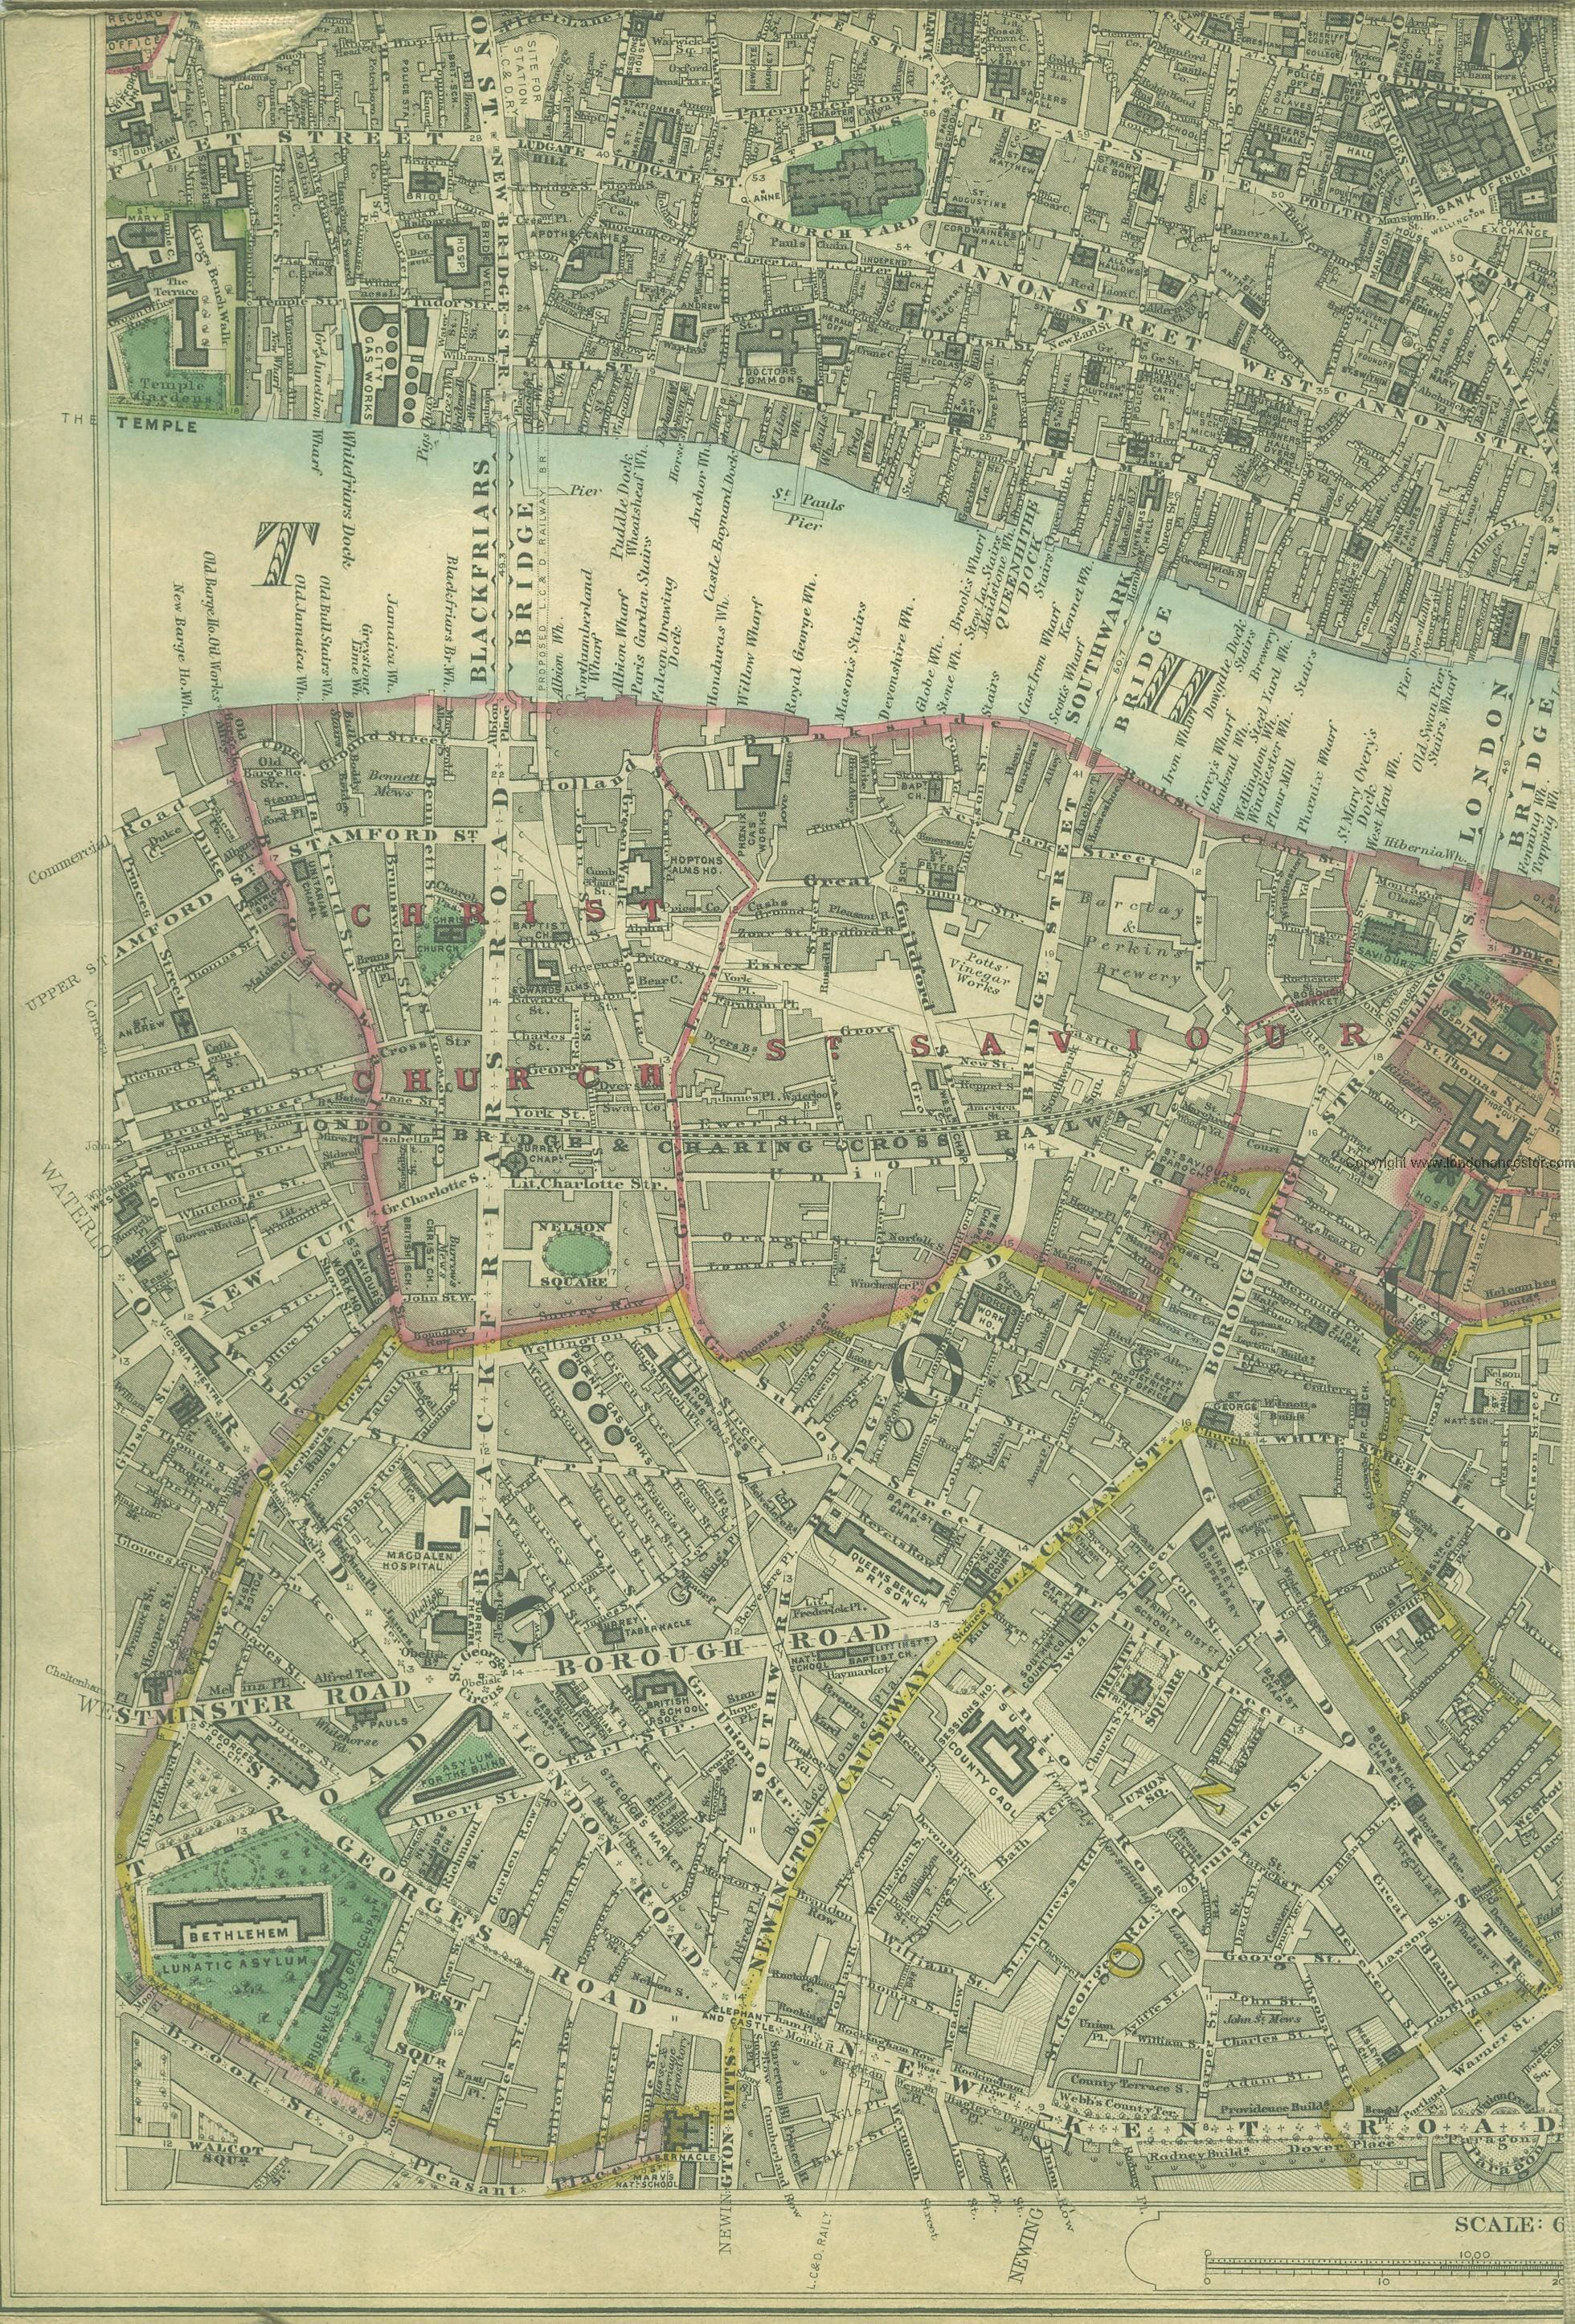 A Timeline History of the Borough (Old Southwark) with